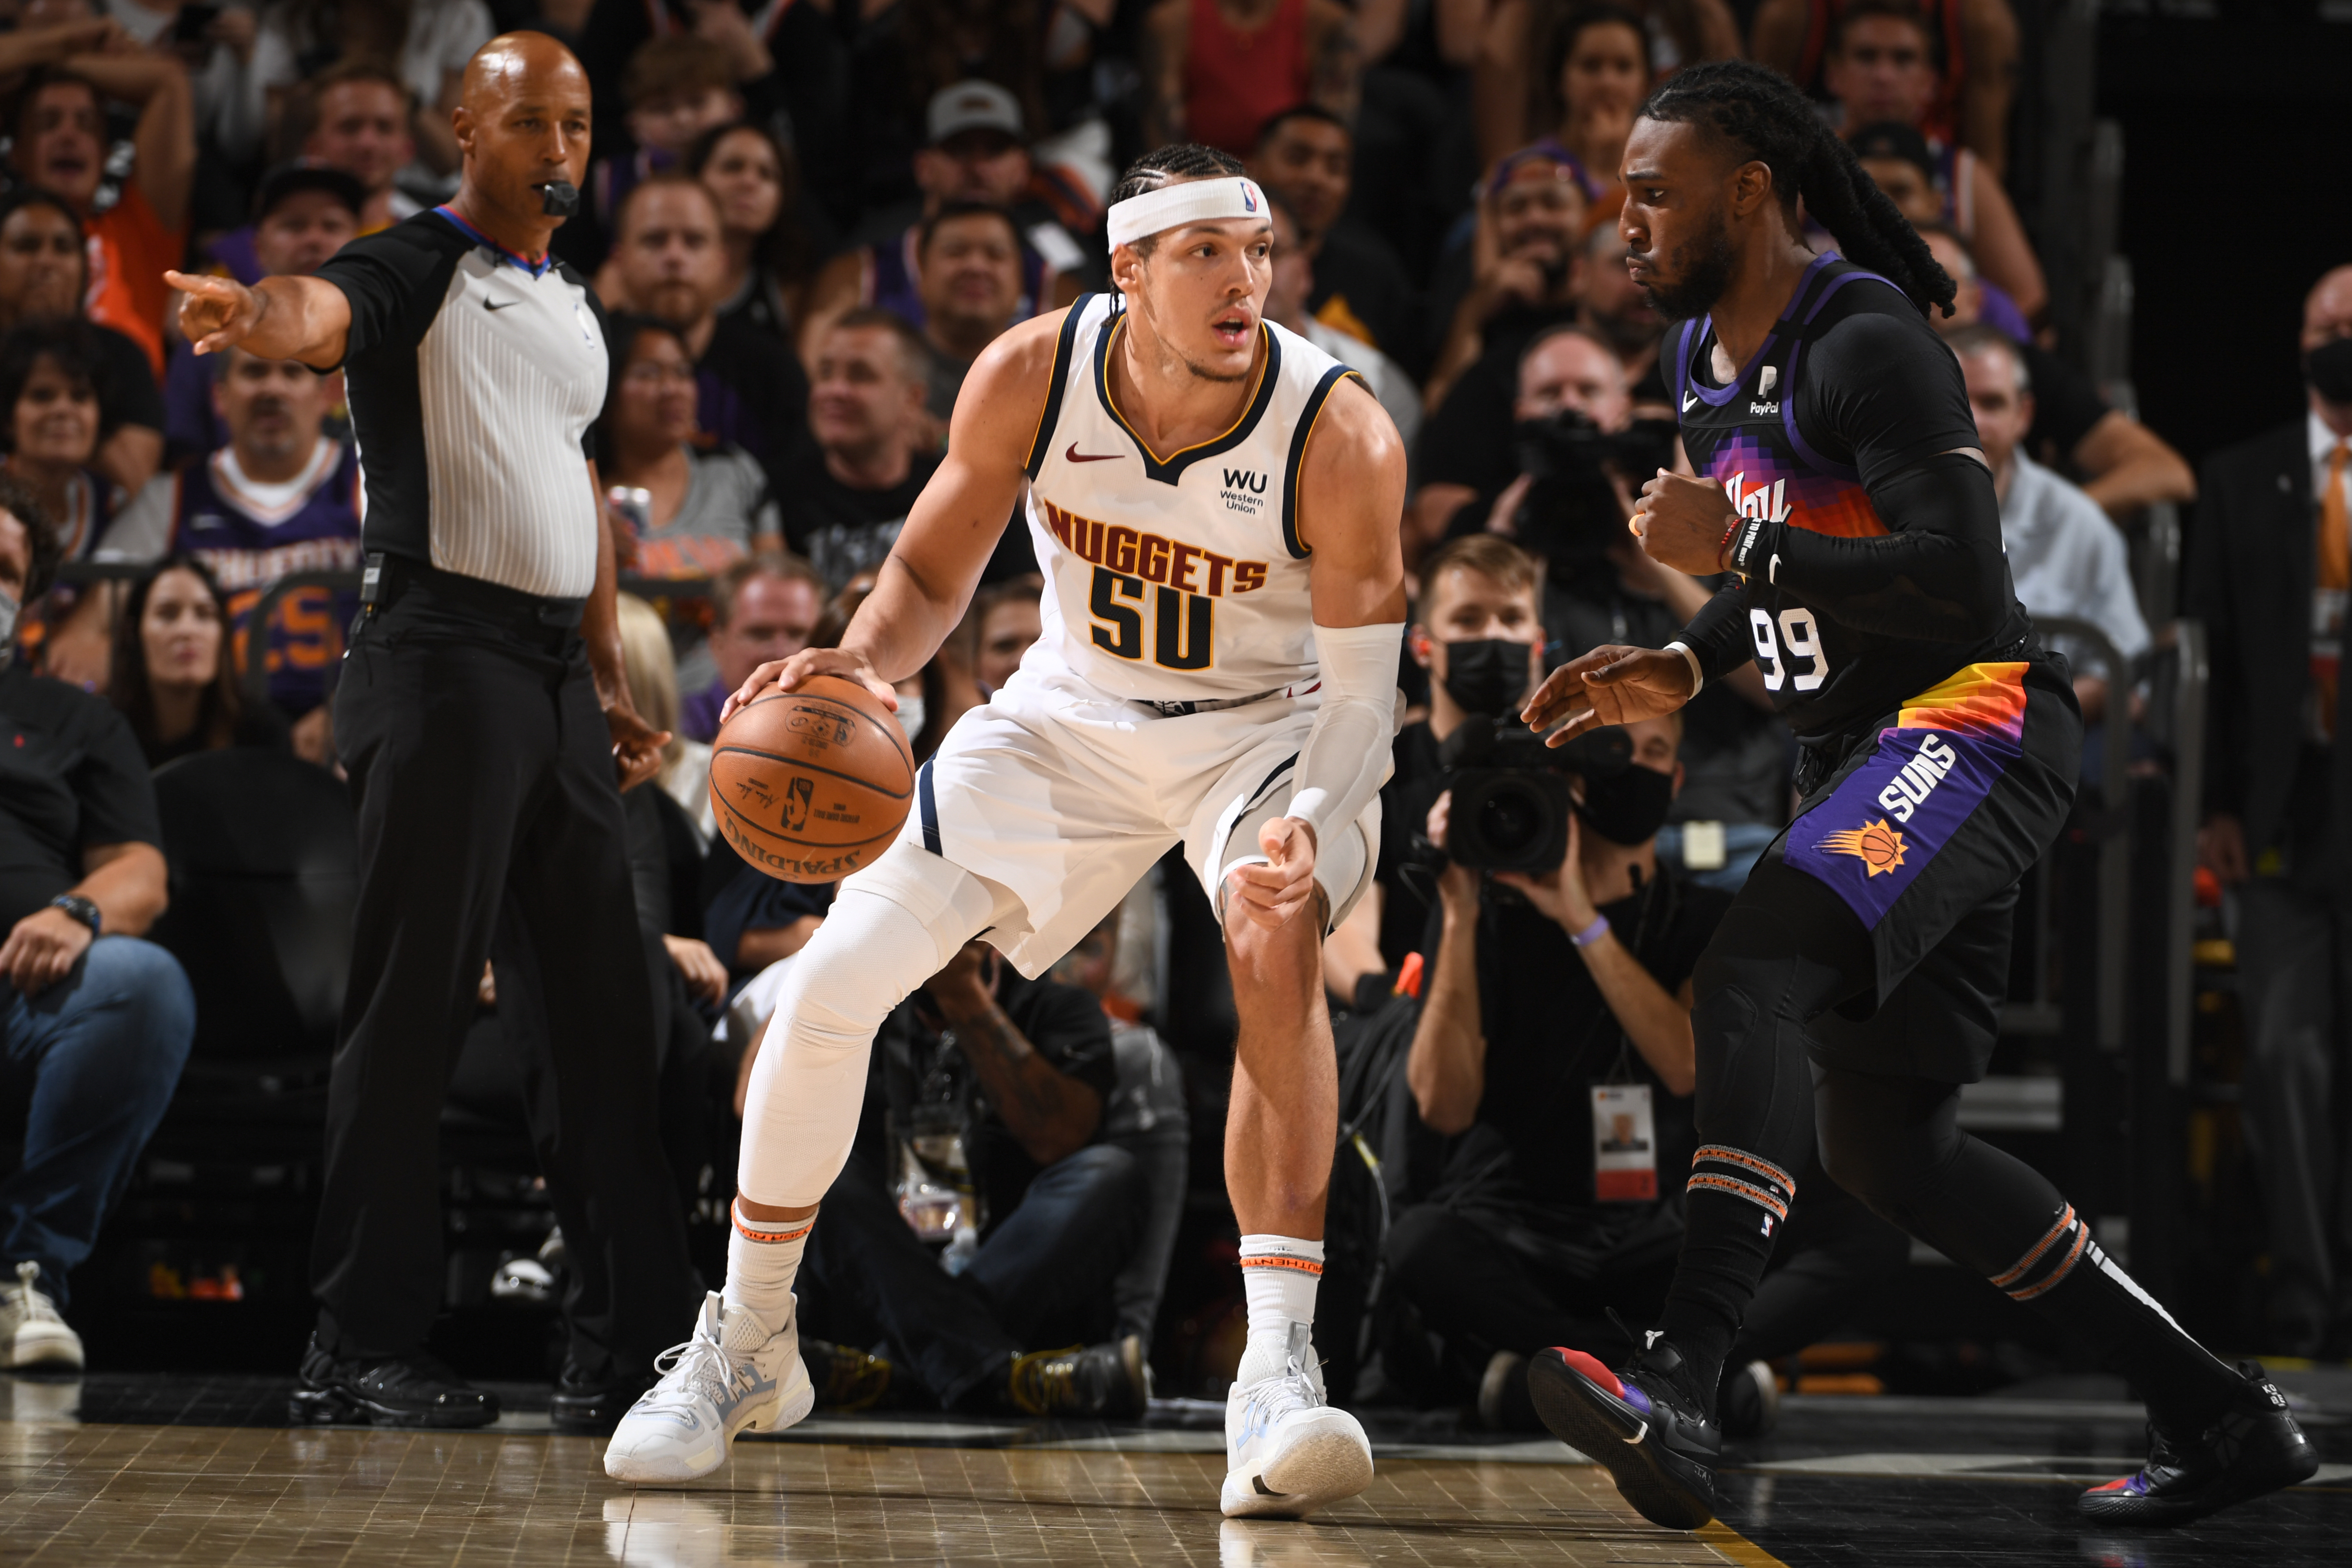 Jae Crowder of the Phoenix Suns plays defense on Aaron Gordon of the Denver Nuggets during Round 2, Game 1 of the 2021 NBA Playoffs on June 7, 2021 at Phoenix Suns Arena in Phoenix, Arizona.